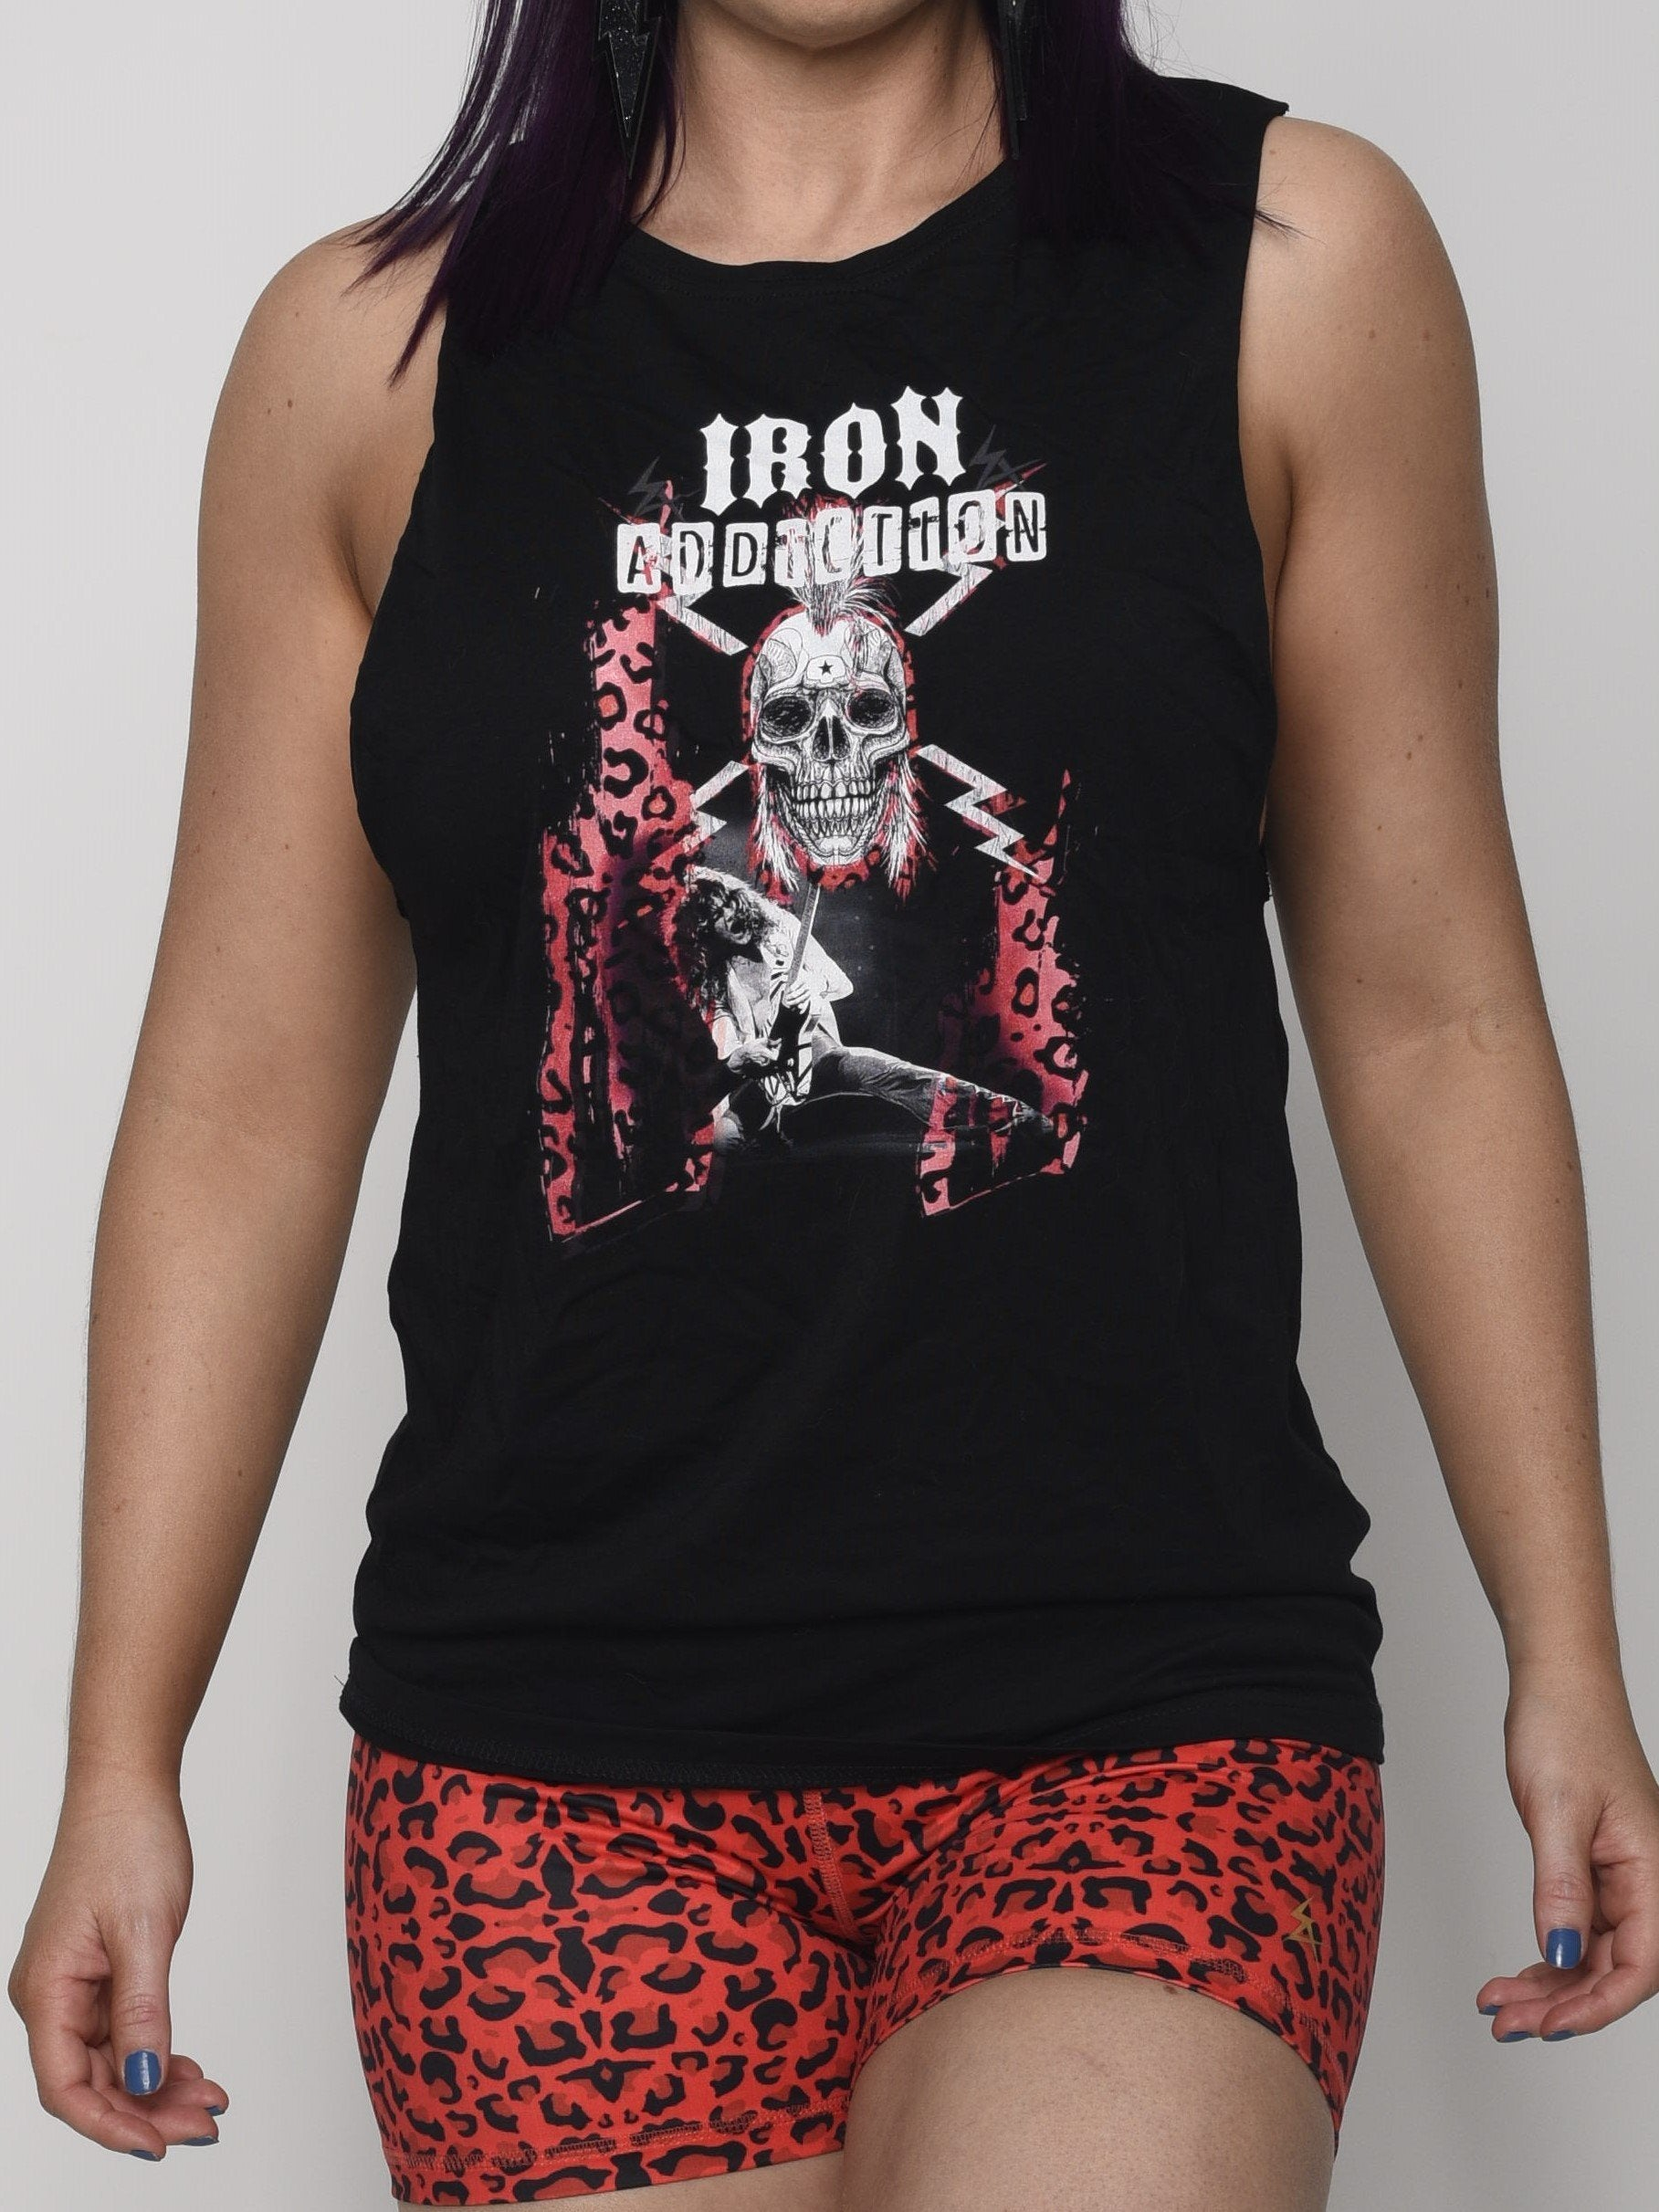 Red Leopard Muscle Tee - Iron Addiction